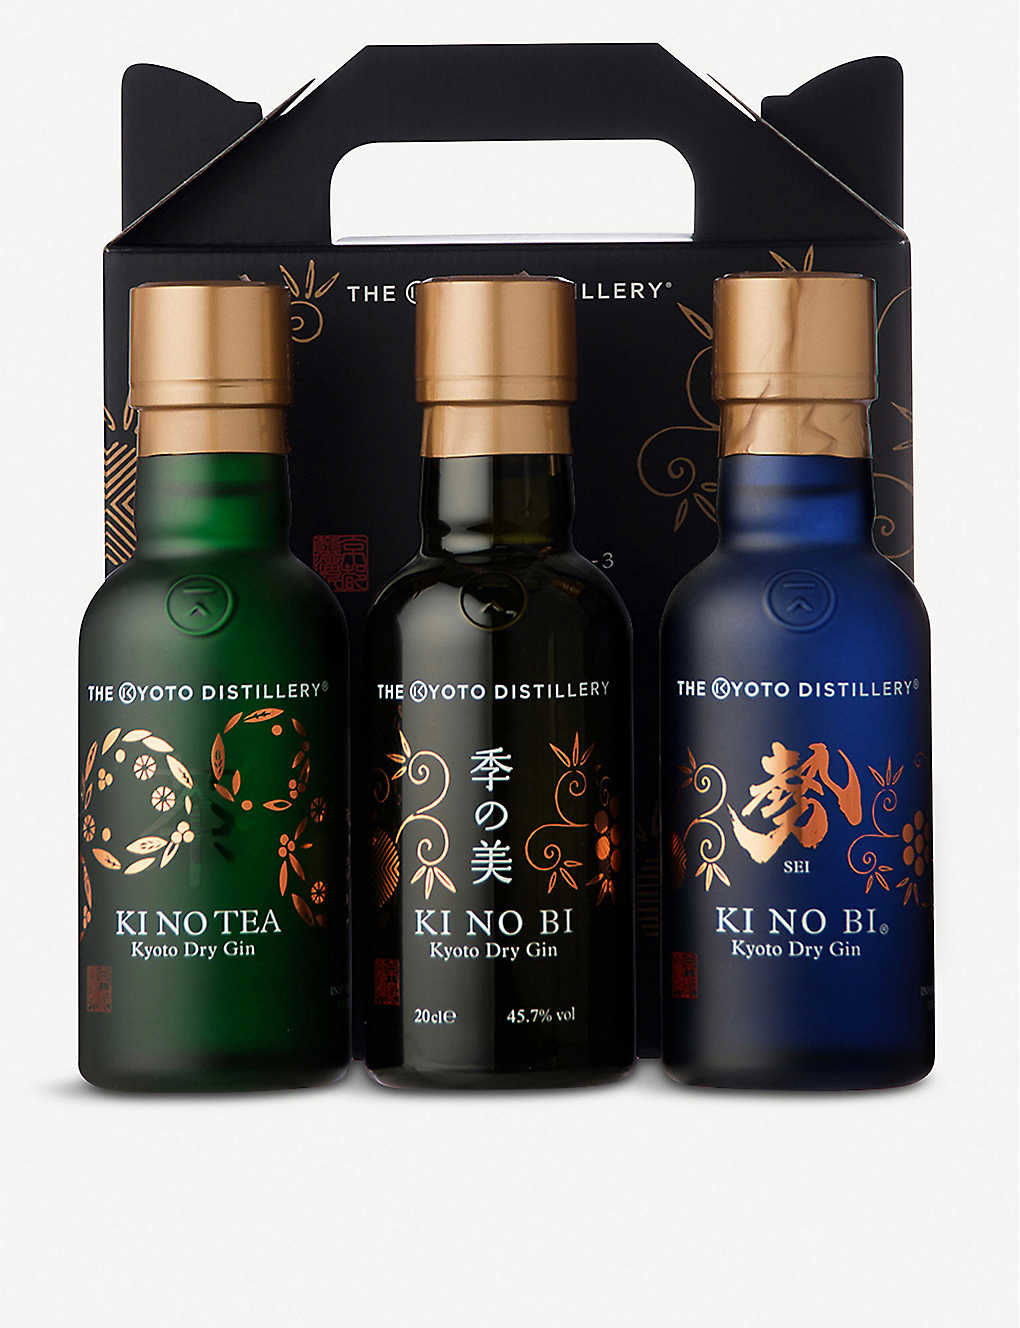 GIN: The Kyoto Distillery gin miniatures tasting set 200ml x 3